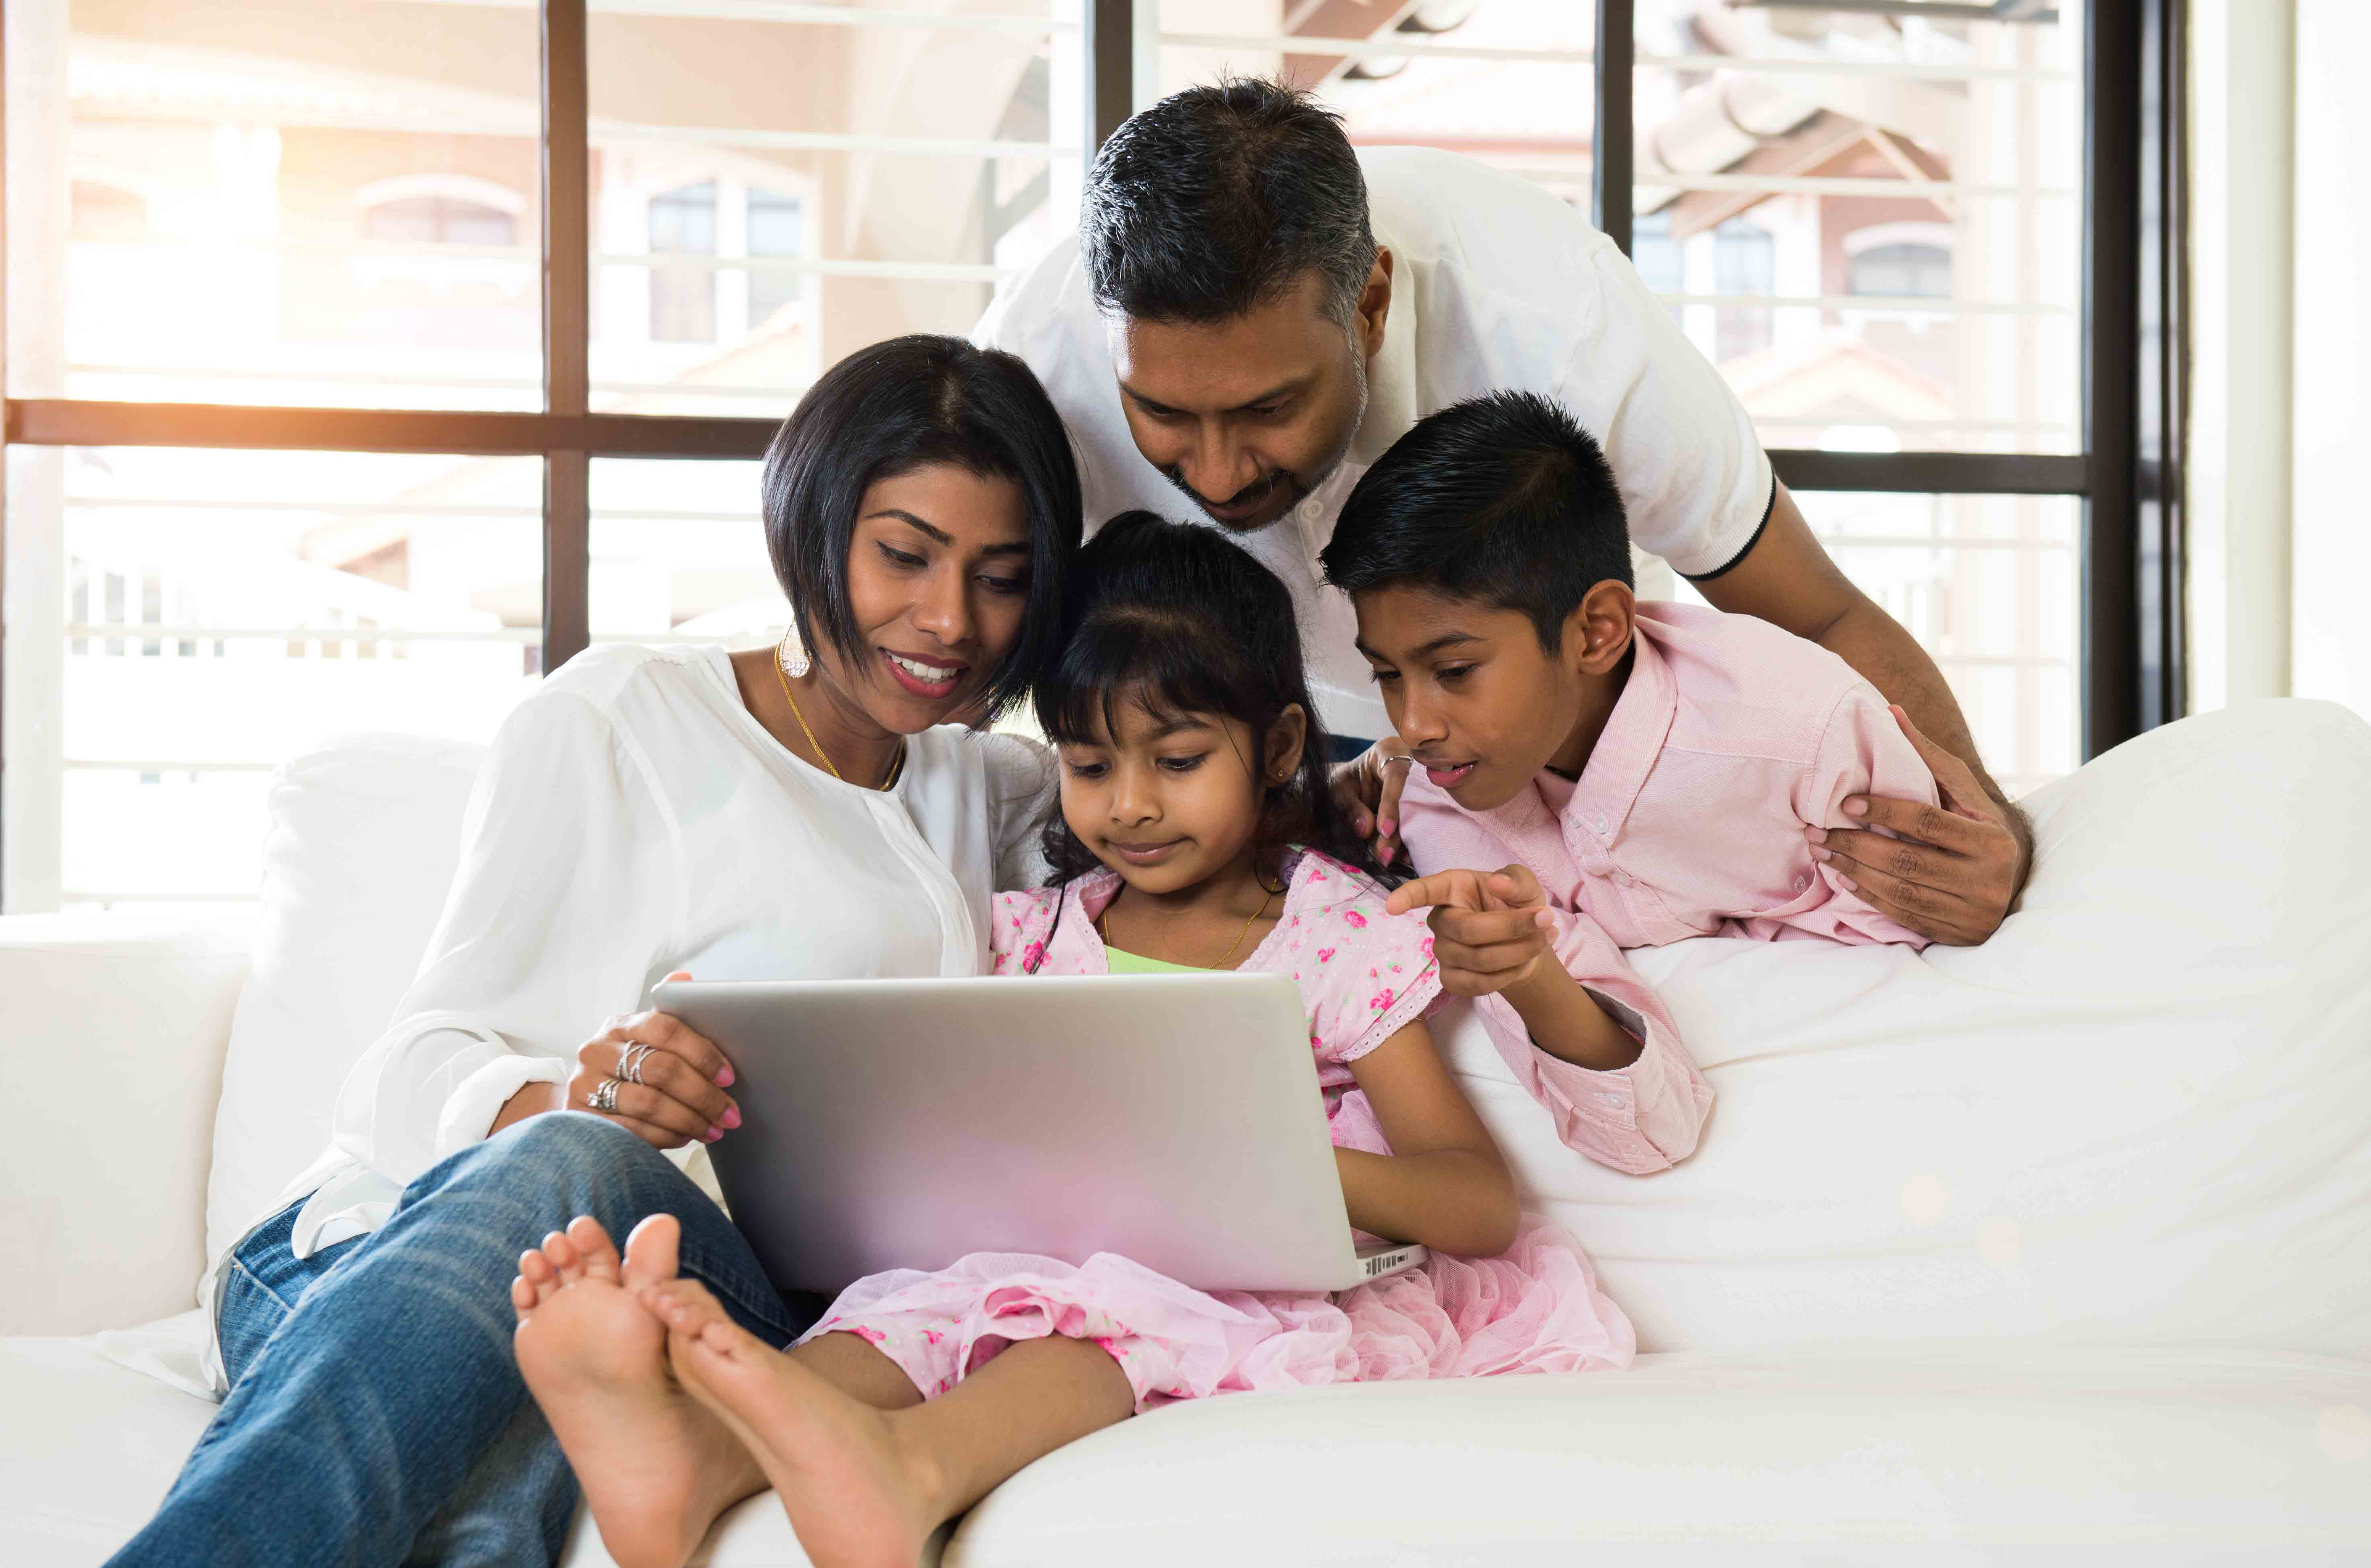 A new immigrant family researching the Canadian financial system on a laptop